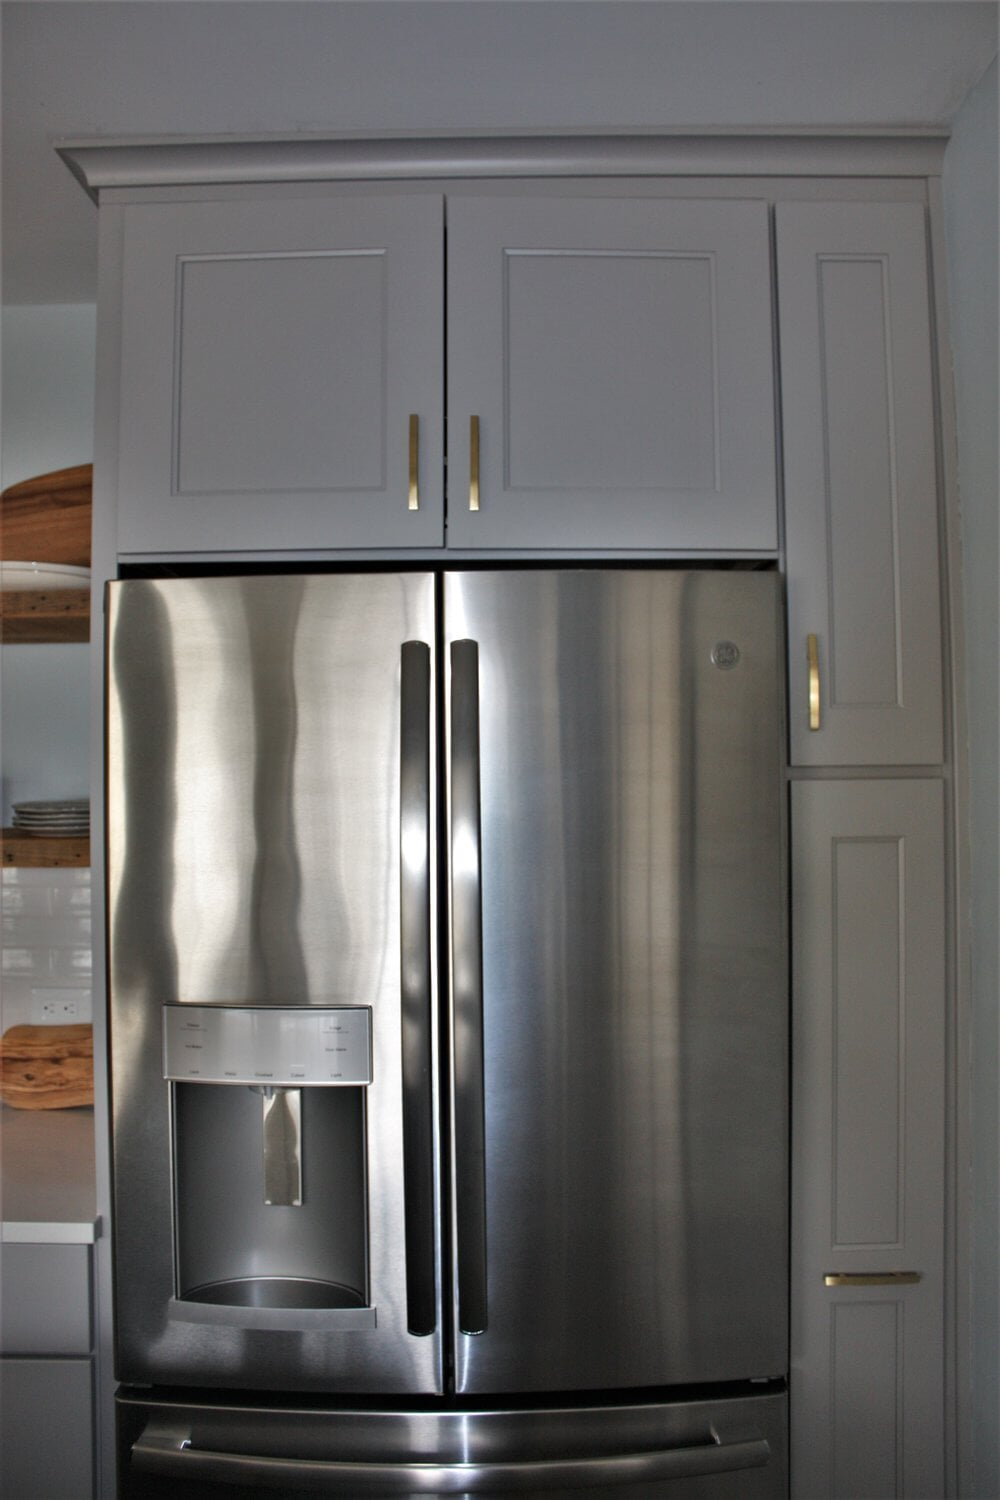 Custom cabinetry around fridge in Huntersville, NC from LITTLE Wood Flooring & Cabinetry